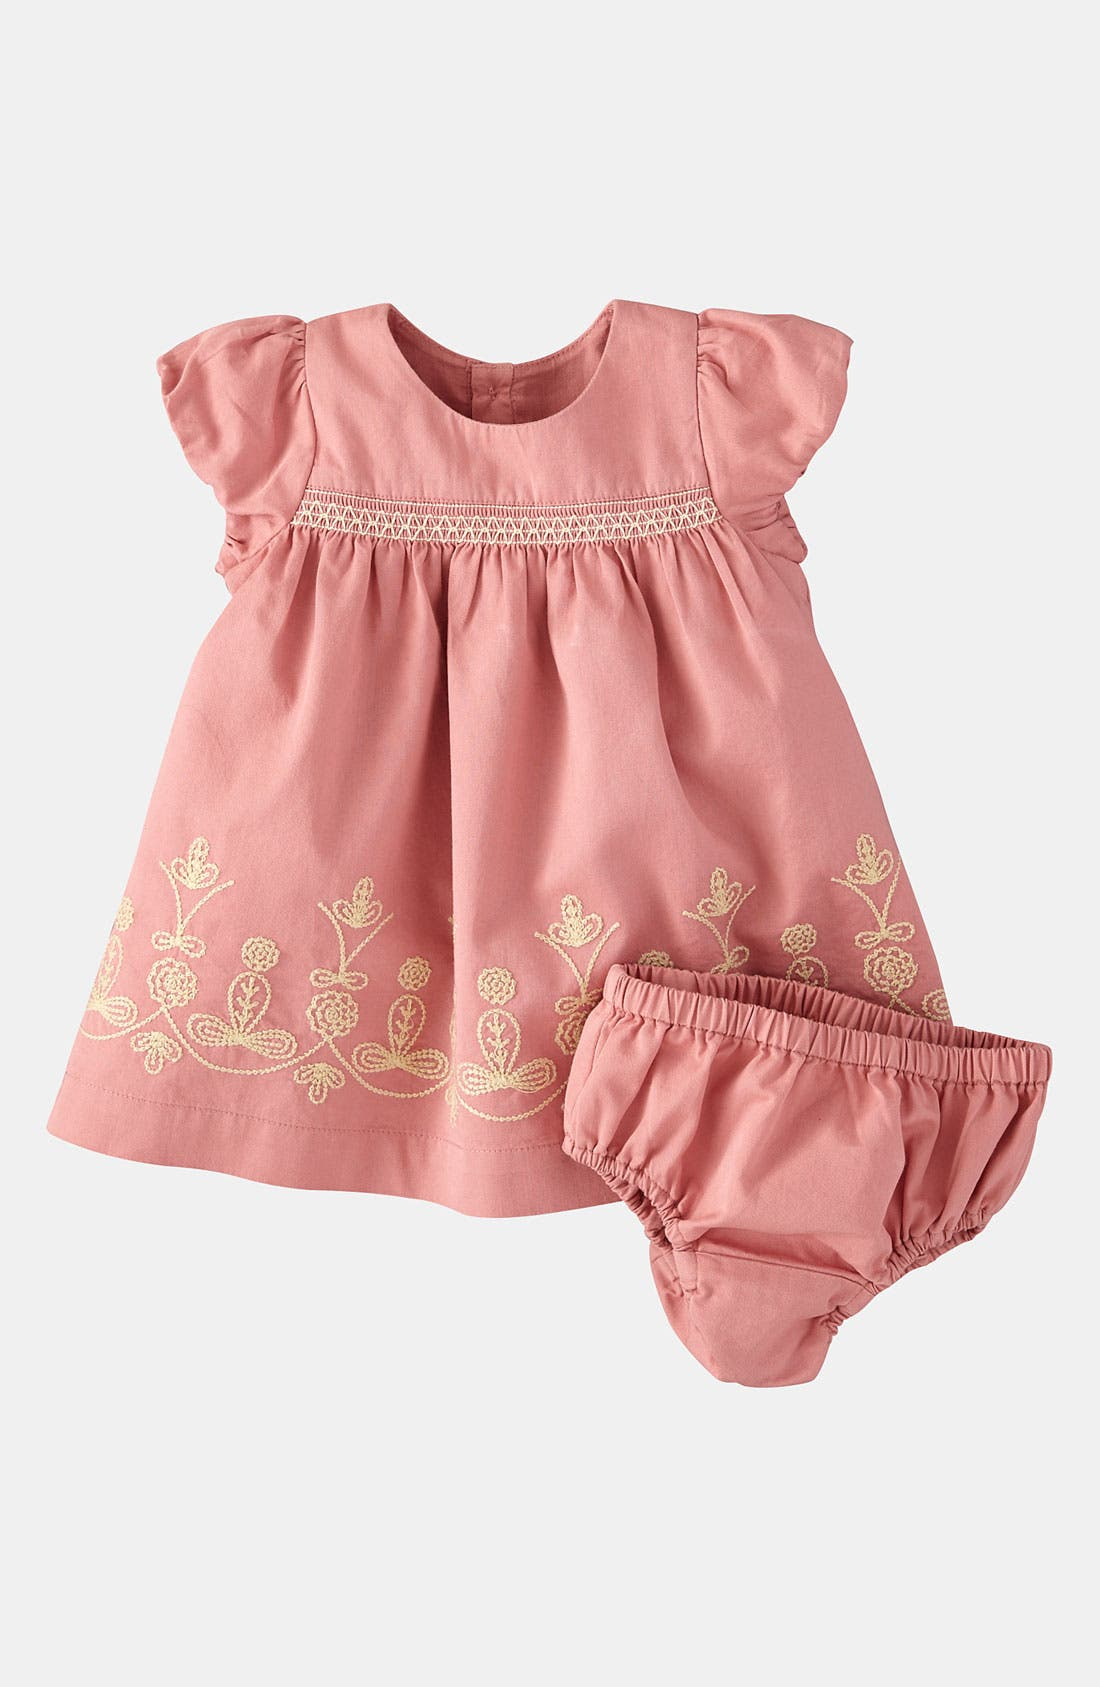 Main Image - Mini Boden Embroidered Dress (Infant)